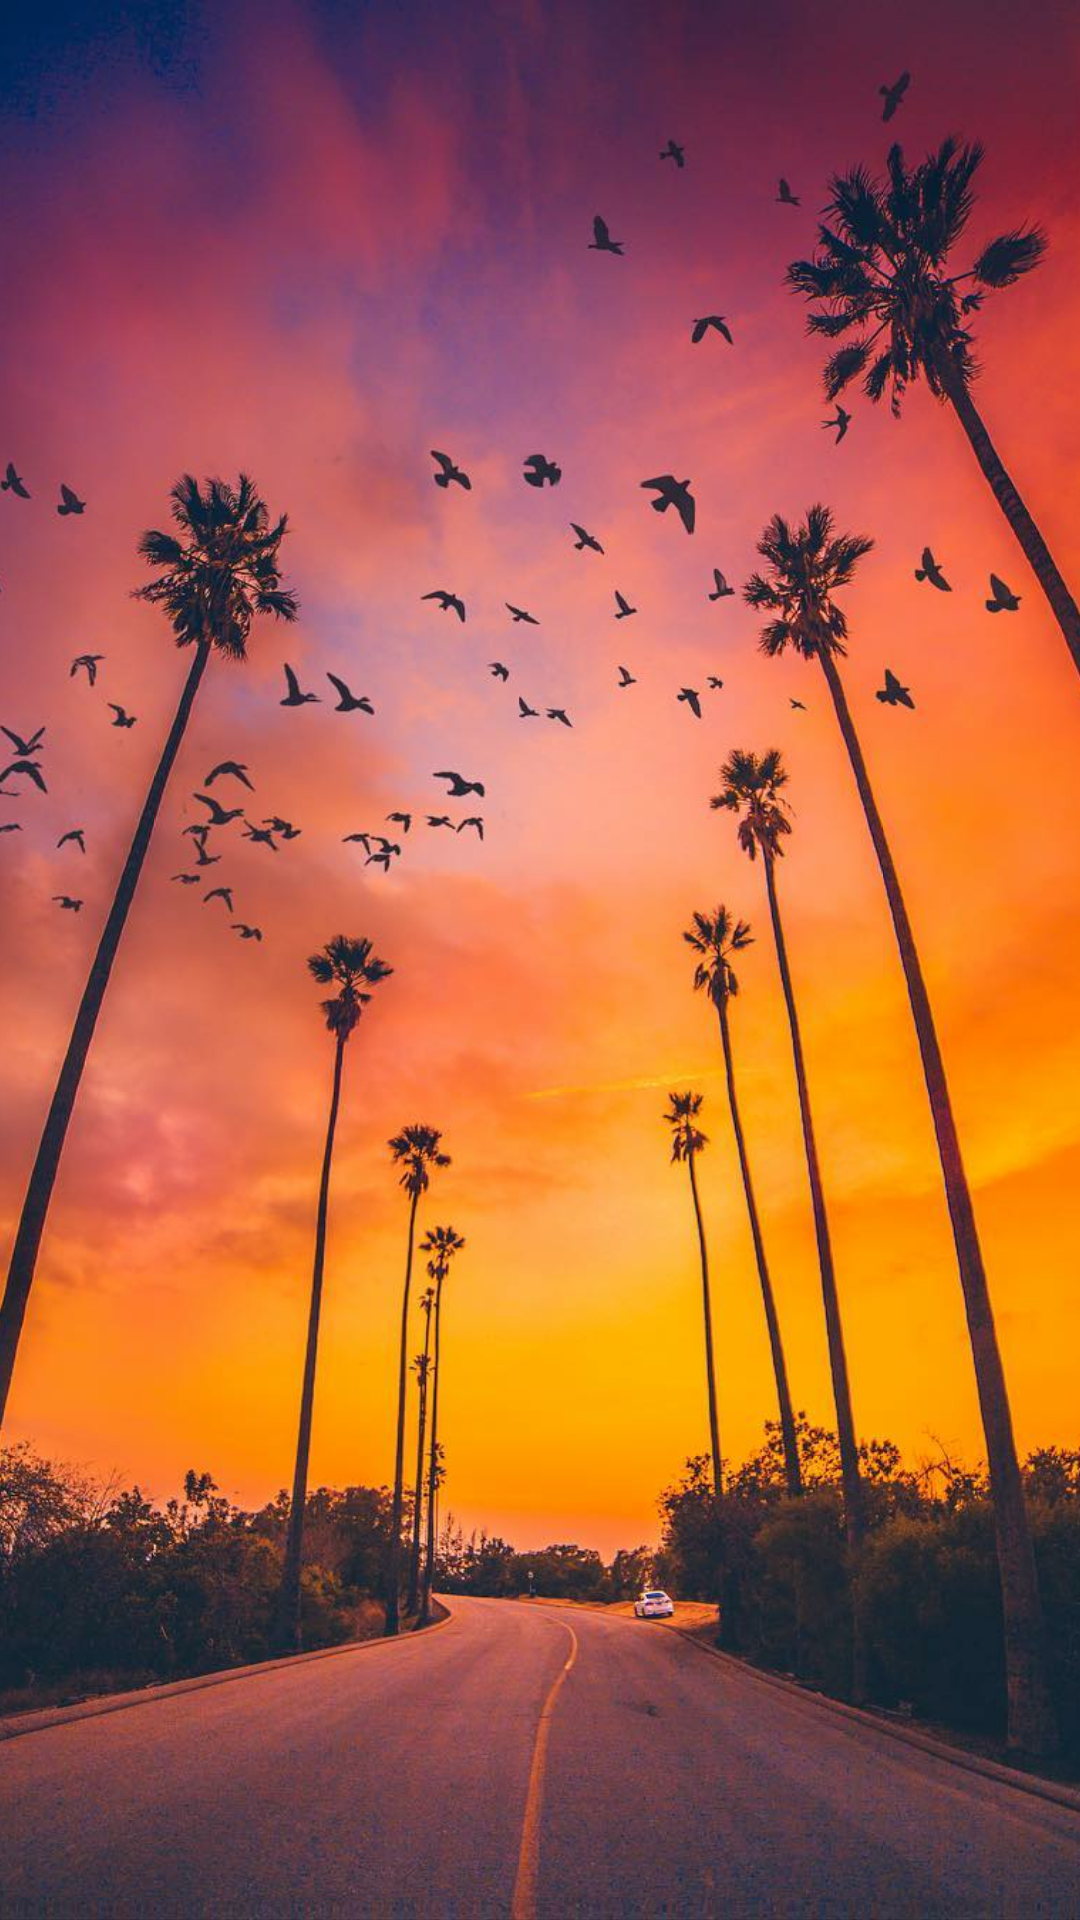 Palm Trees Sunset Nature Iphone Wallpaper In 2020 Nature Backgrounds Iphone Wallpaper Iphone Summer Palm Trees Wallpaper